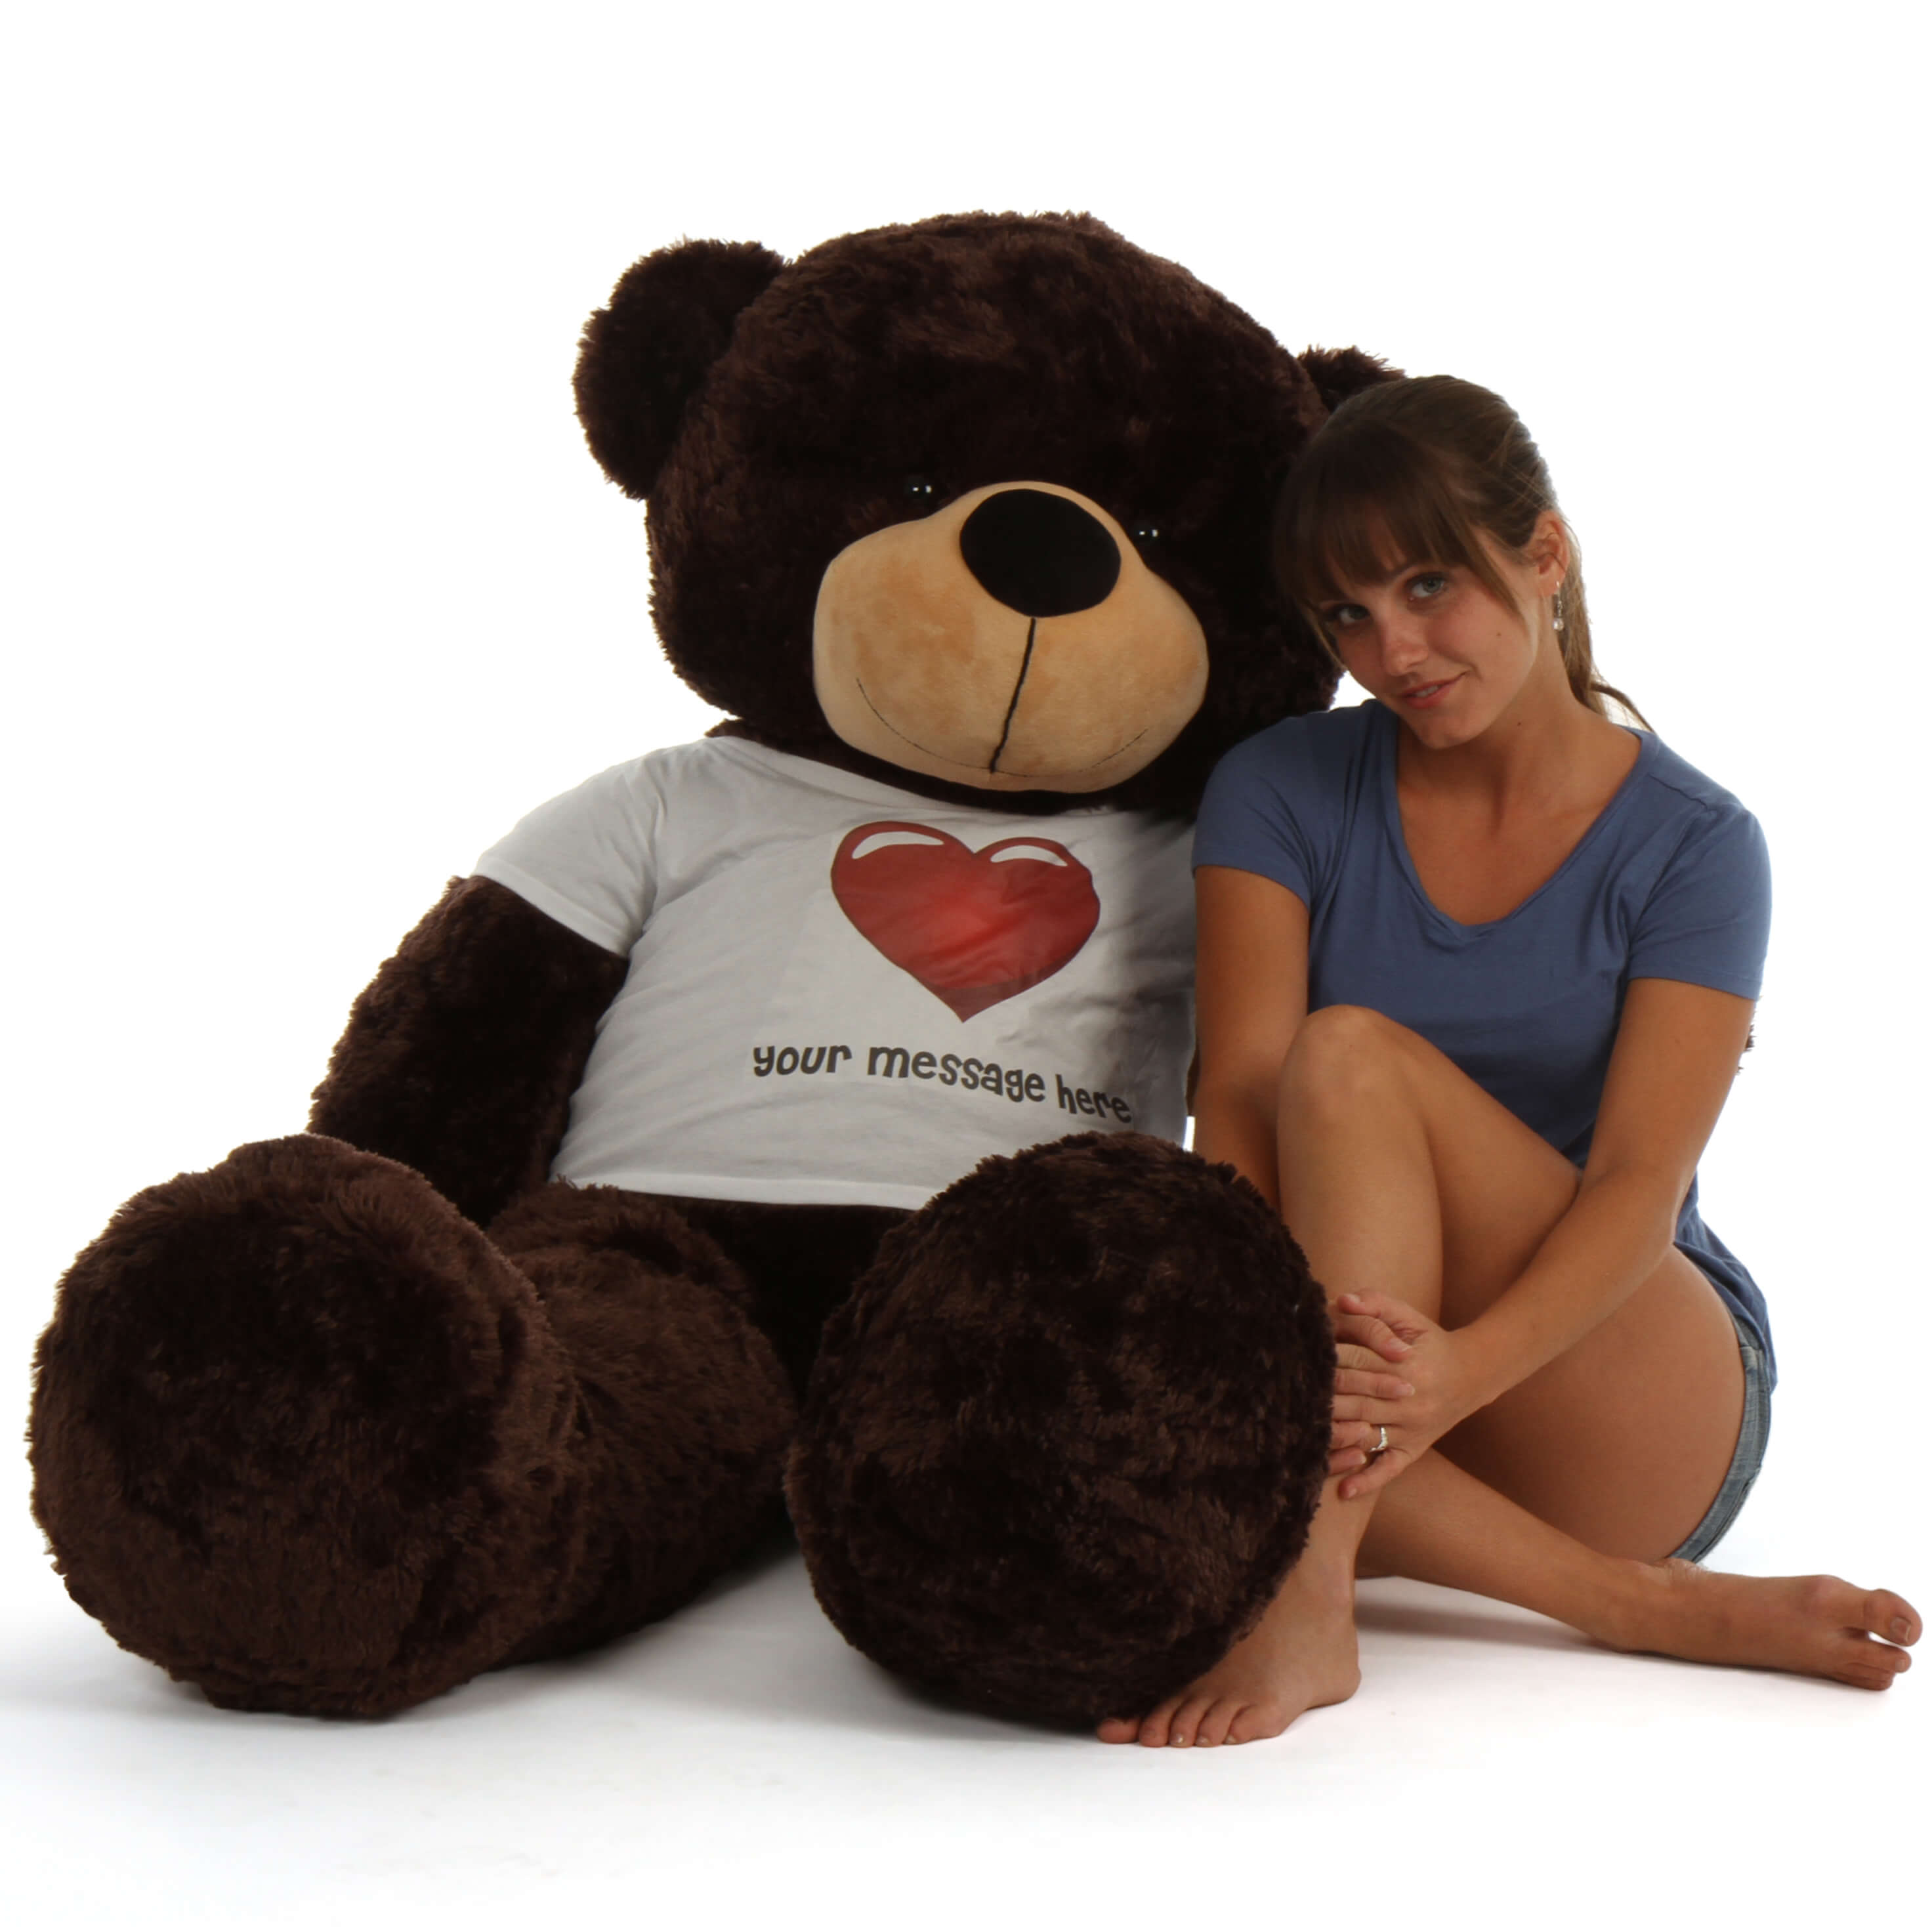 5ft-life-size-personalized-dark-brown-teddy-bear-brownie-cuddles-in-red-heart-shirt-1.jpg